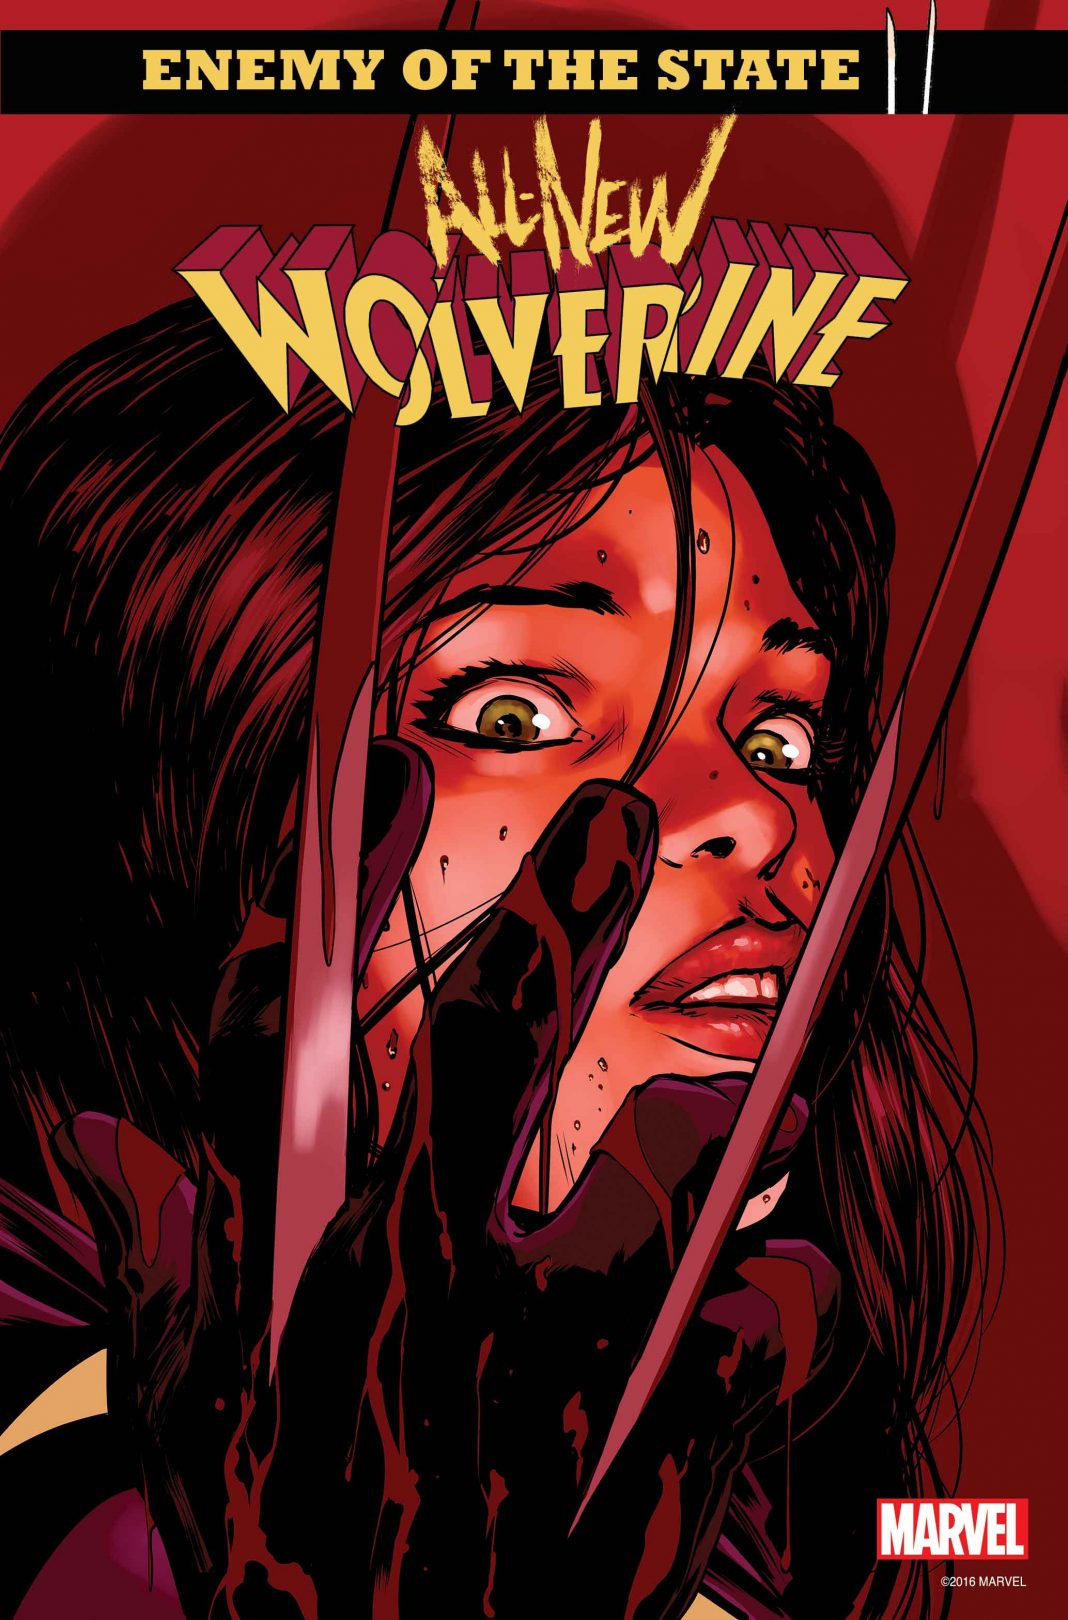 Enemy of the State II Begins: Your First Look at ALL-NEW WOLVERINE #13!